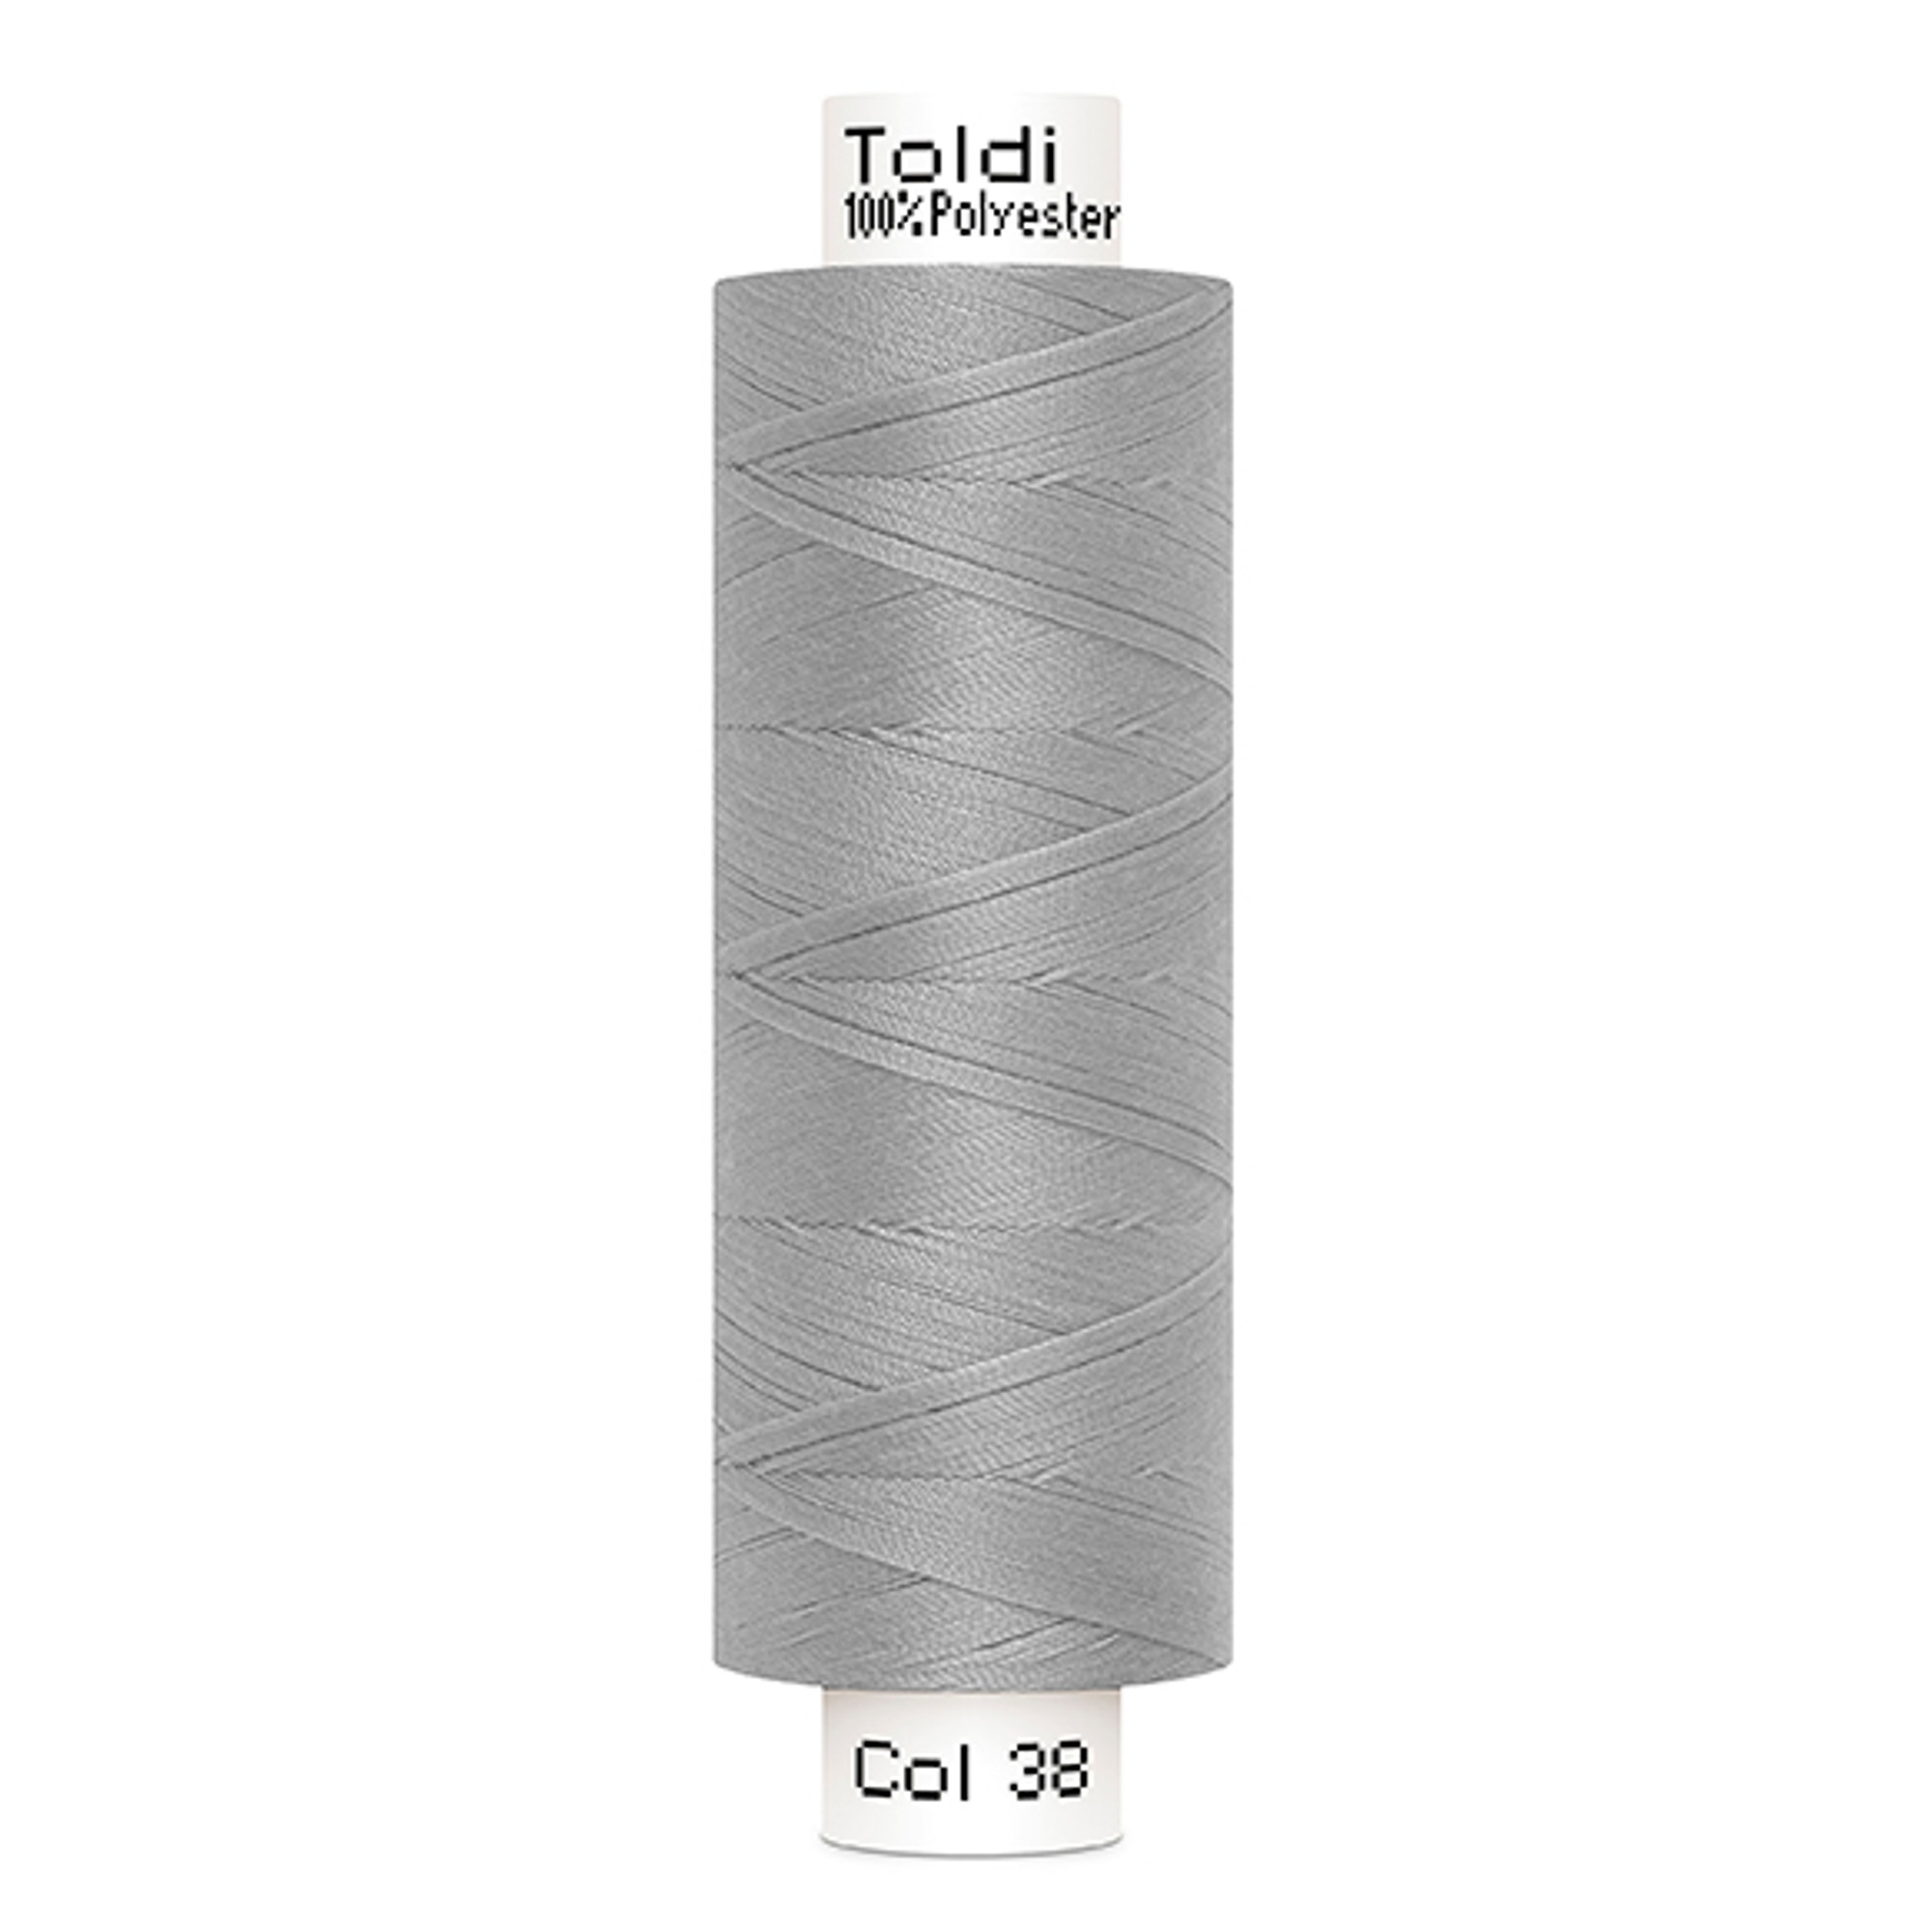 Gütermann Toldi Sewing Thread 500 m, lightgrijs | 707589-38 | grau